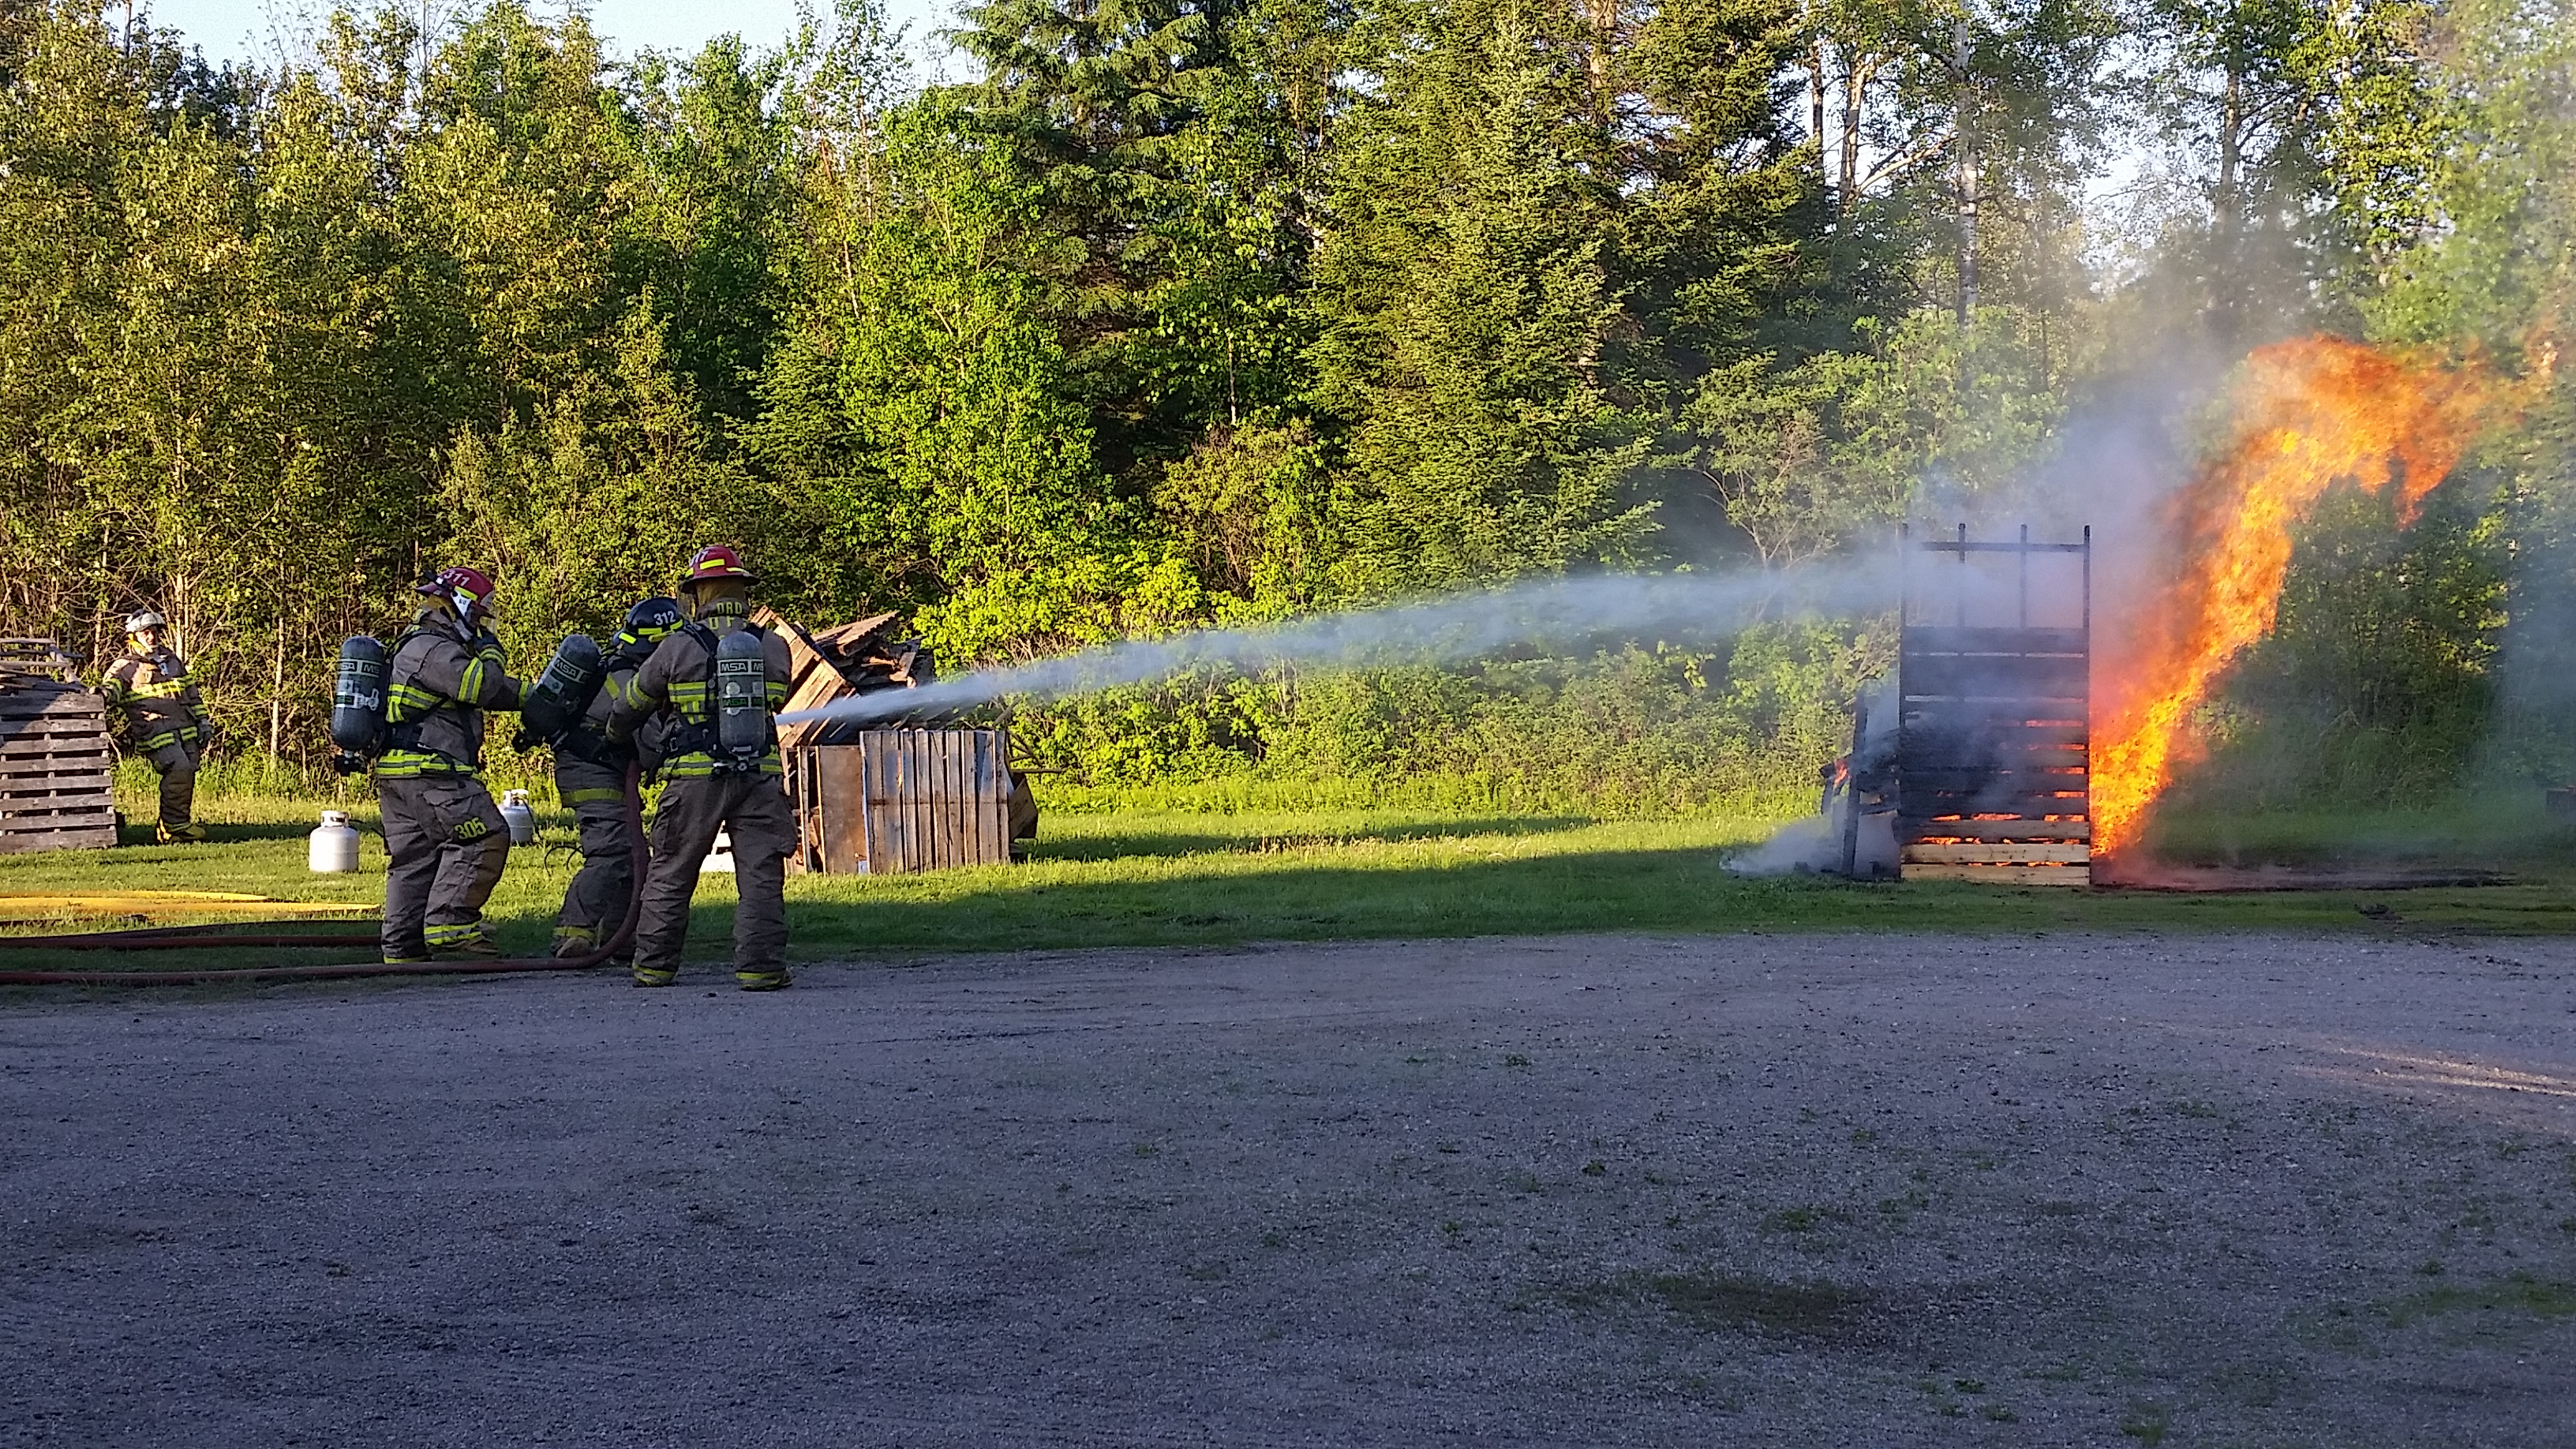 firefighters spraying water onto a fire